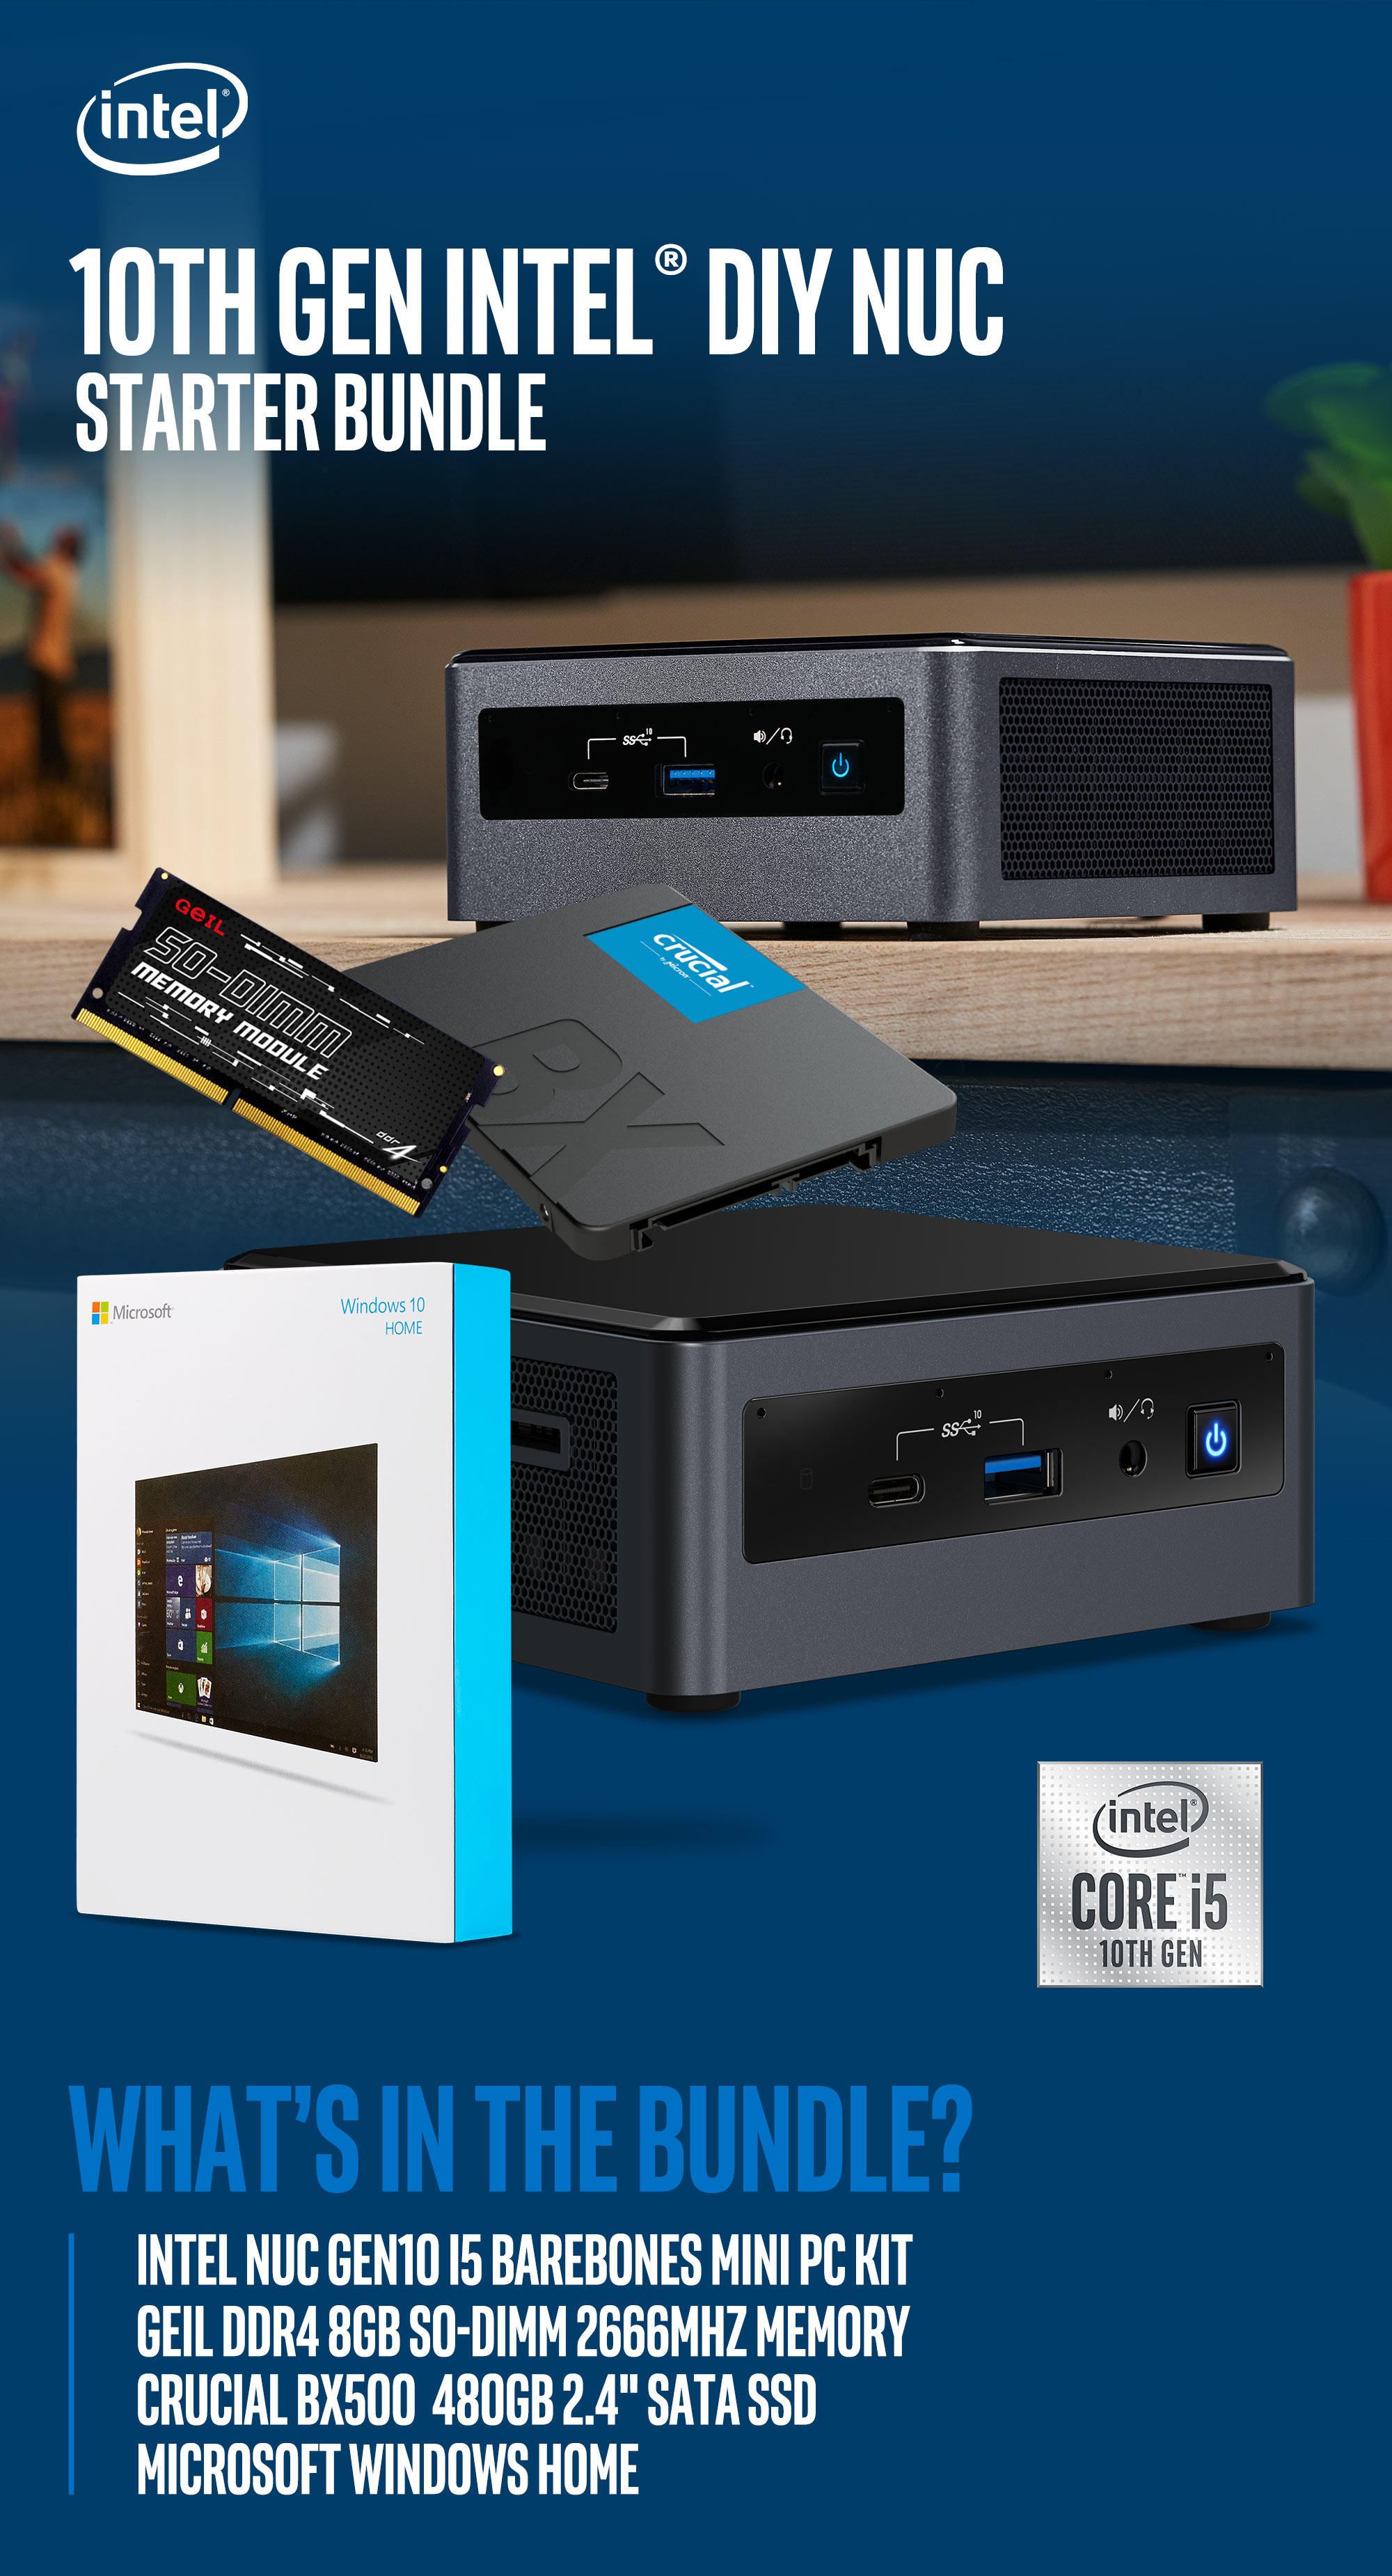 A large marketing image providing additional information about the product Intel 10th Gen i5 NUC DIY Starter Bundle - Additional alt info not provided